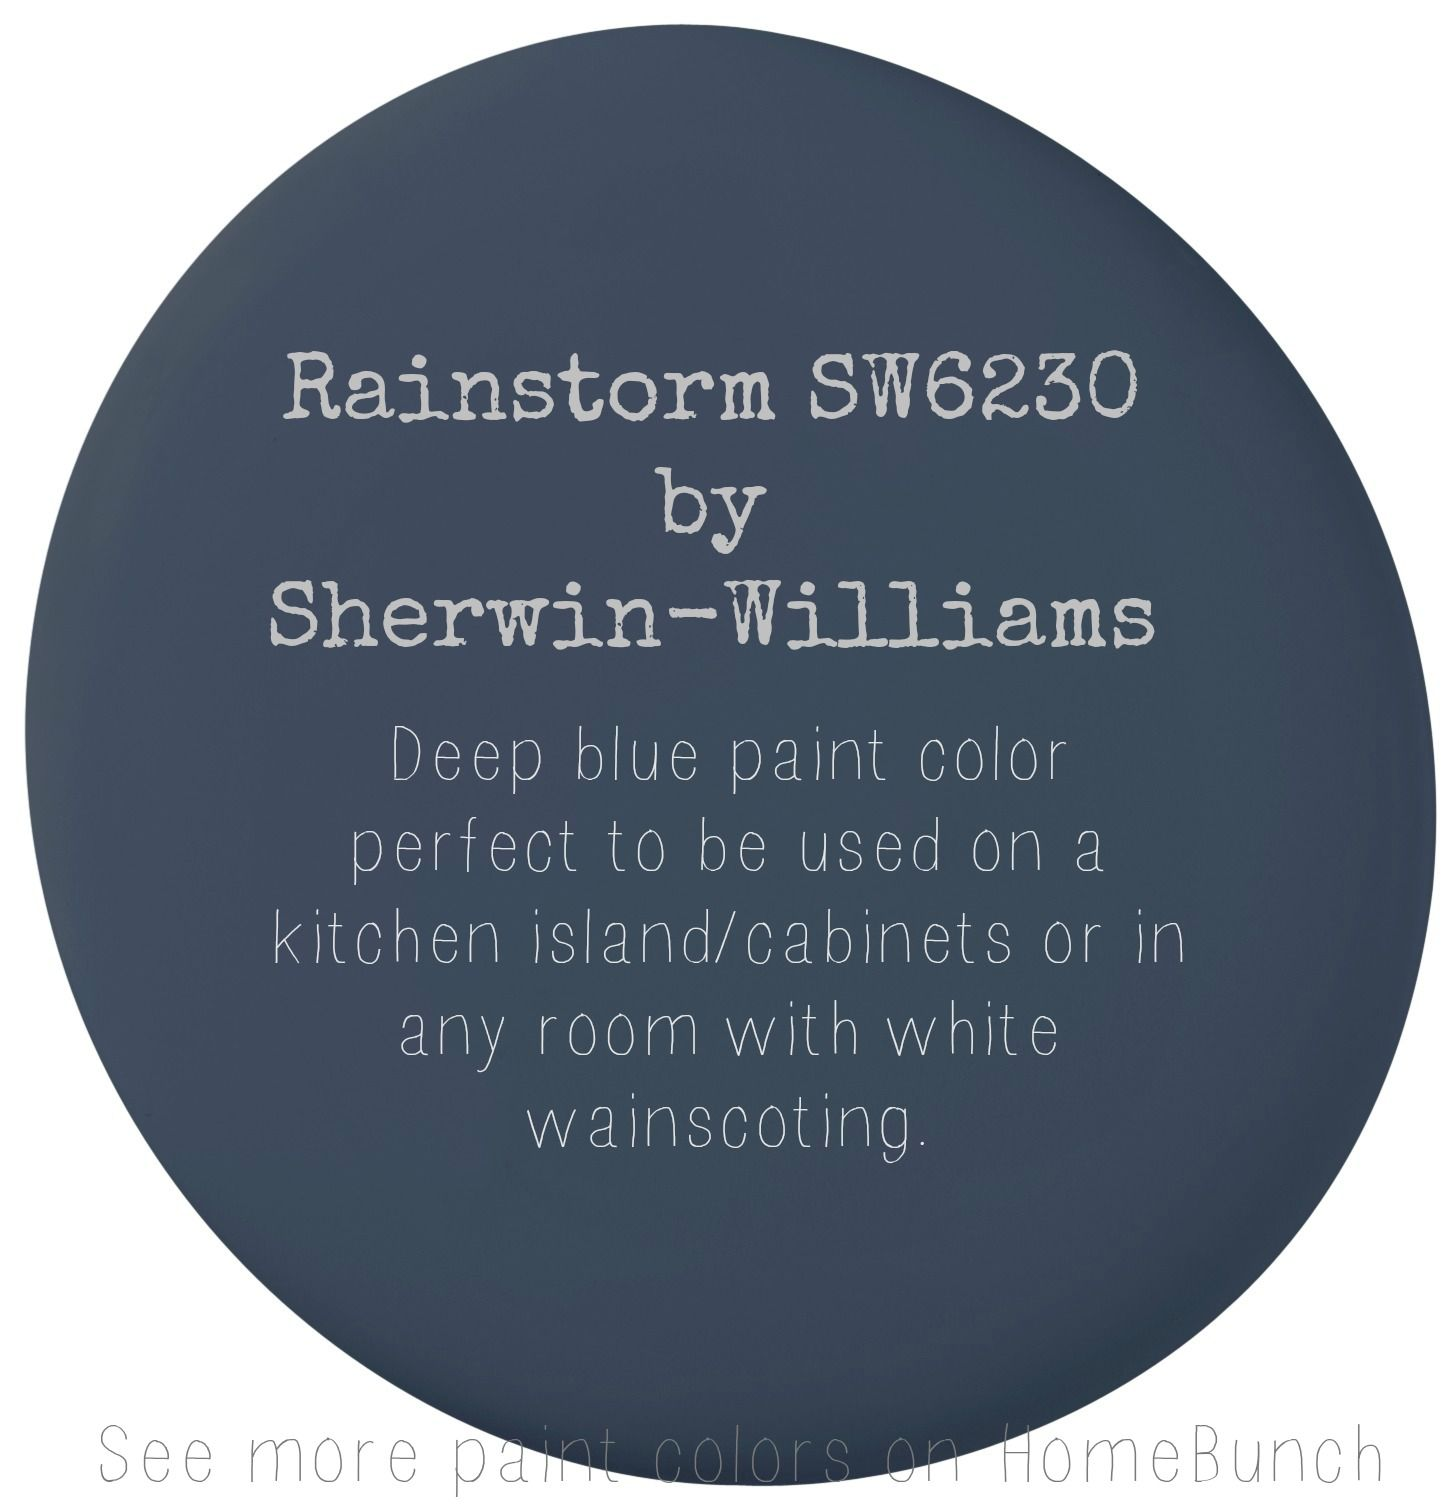 True Blue Paint Color Rainstorm Sw6230 By Sherwin Williams Deep Blue Paint Color